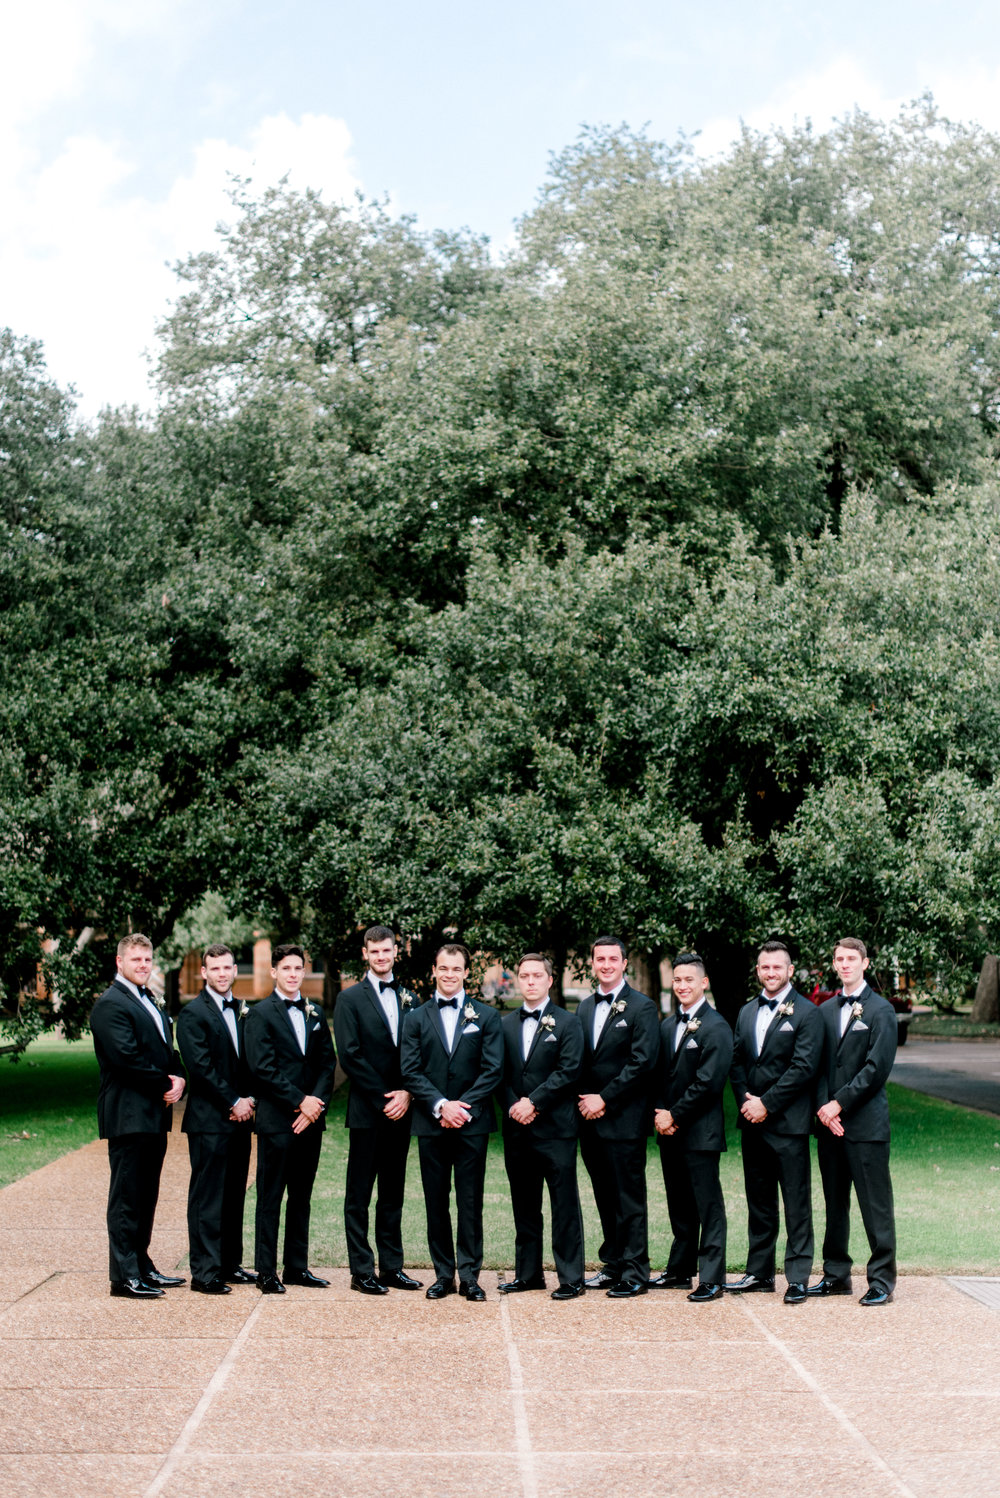 wedding-details-photography-dana-fernandez-groom-groomsmen-tux-bowtie-boutonniere-floral-greenery-by-maxit-flower-design-houston-texas